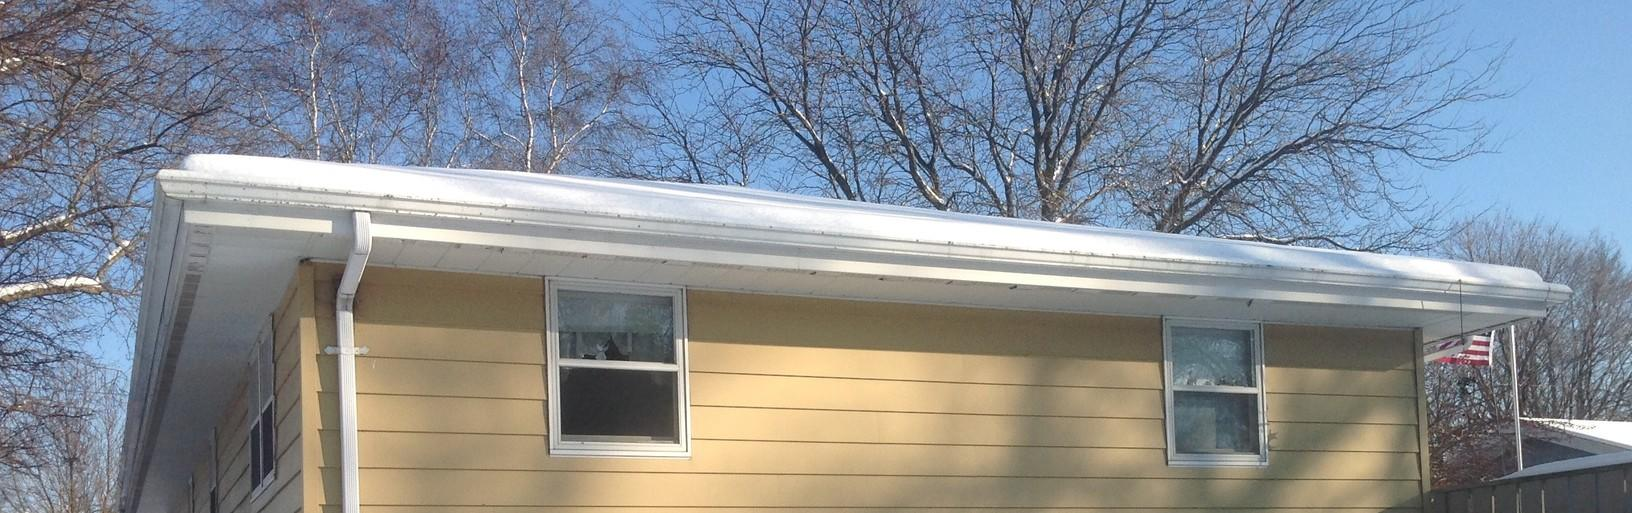 LeafGuard Gutters Installed in Howards Grove - Before Photo